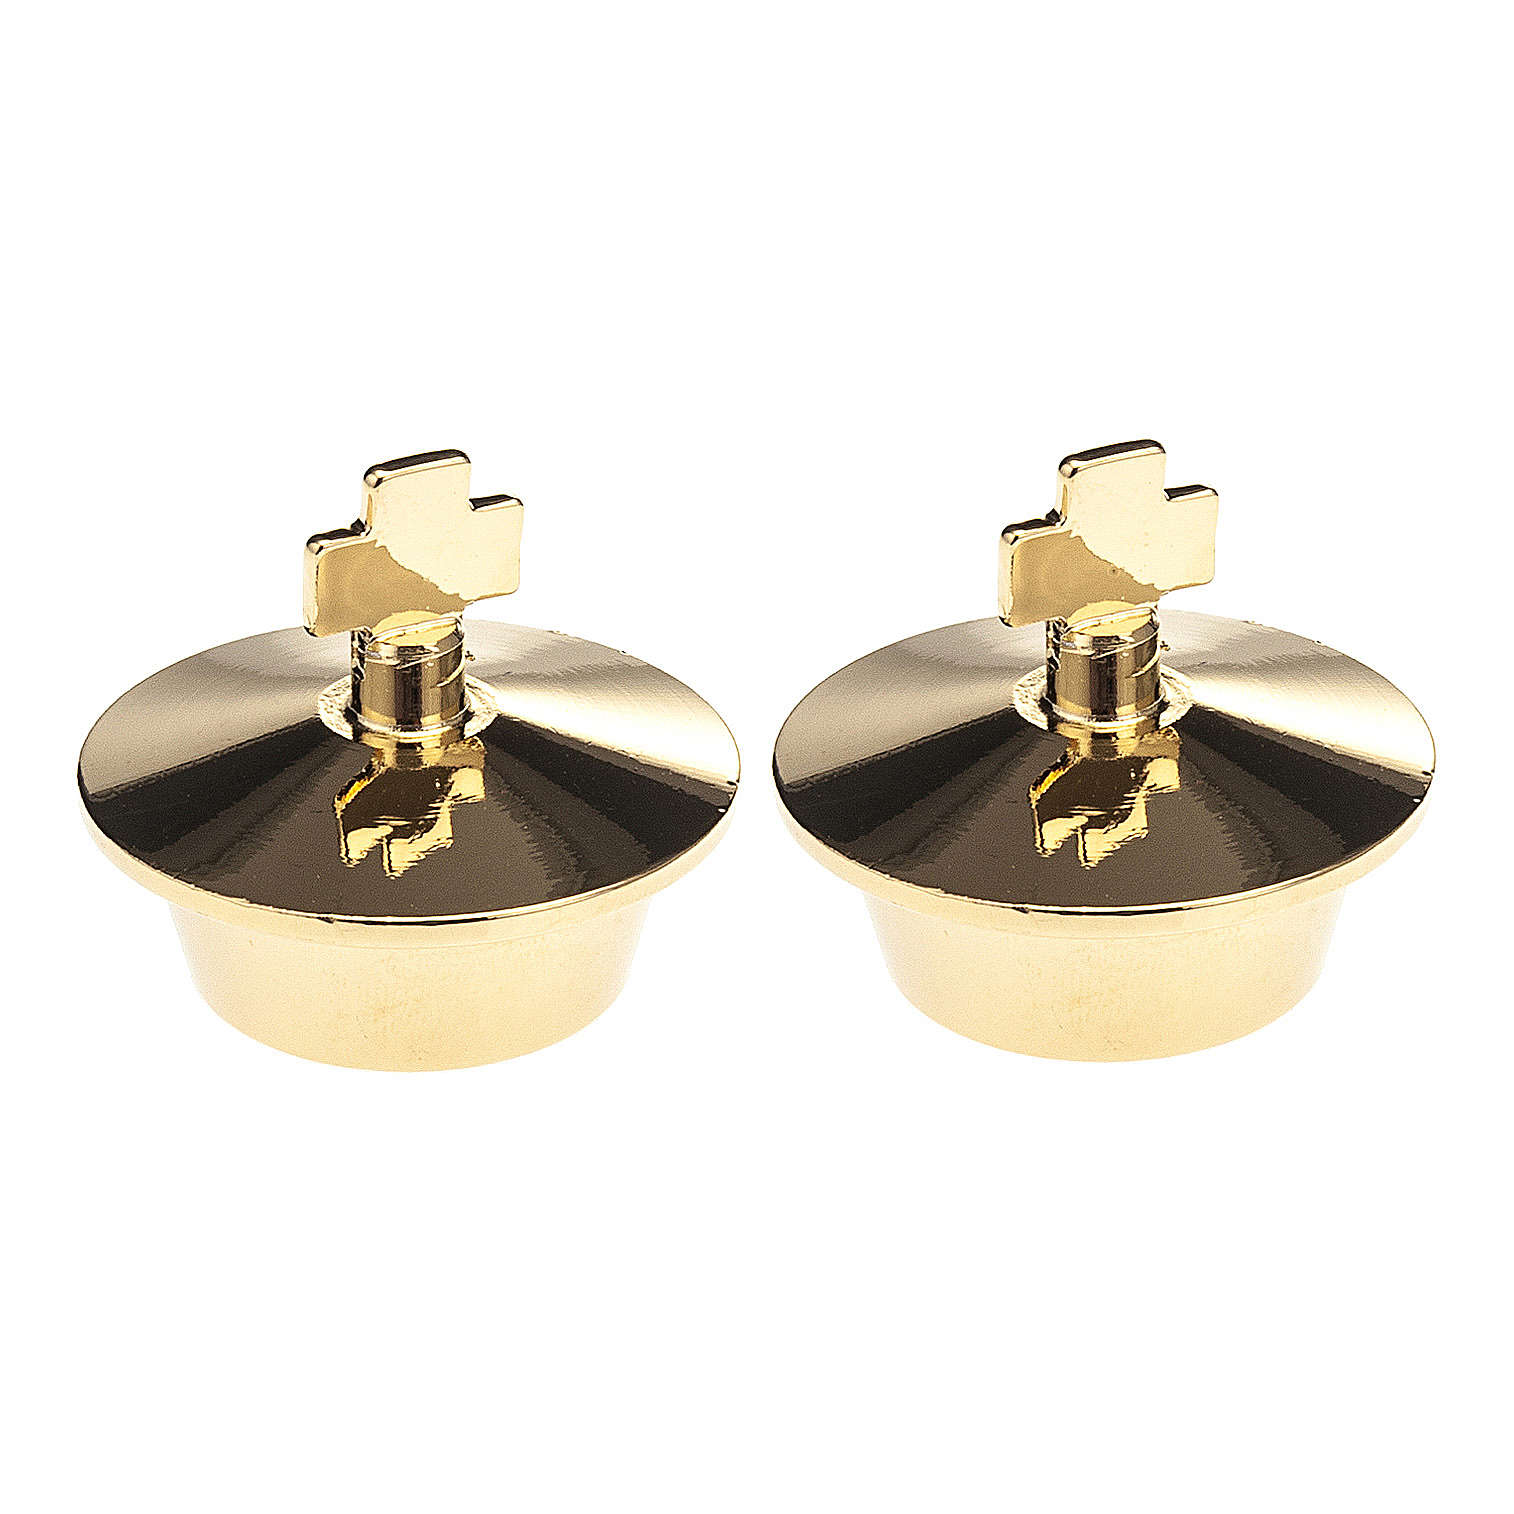 Replacement lids for glass cruets, pairs 4